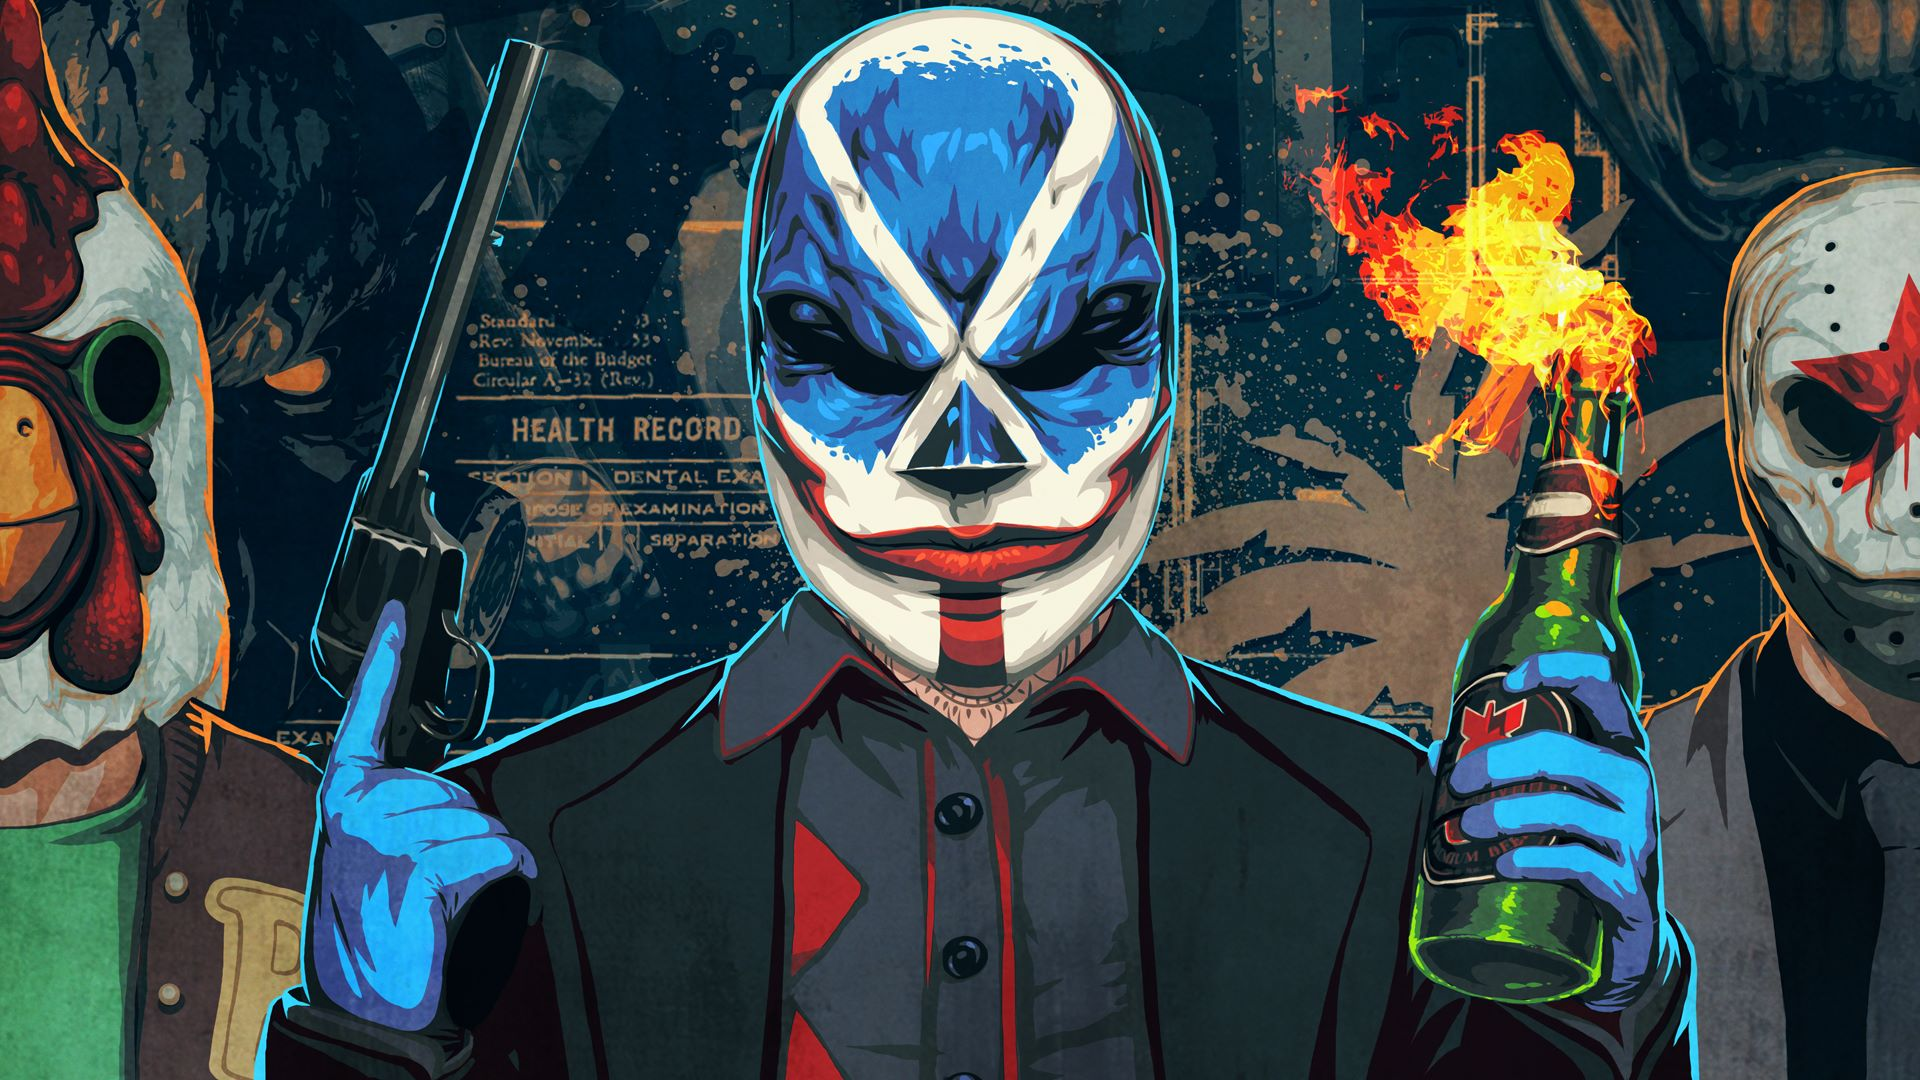 Payday 2 Payday Game Payday 3: THE BIG SCORE Game